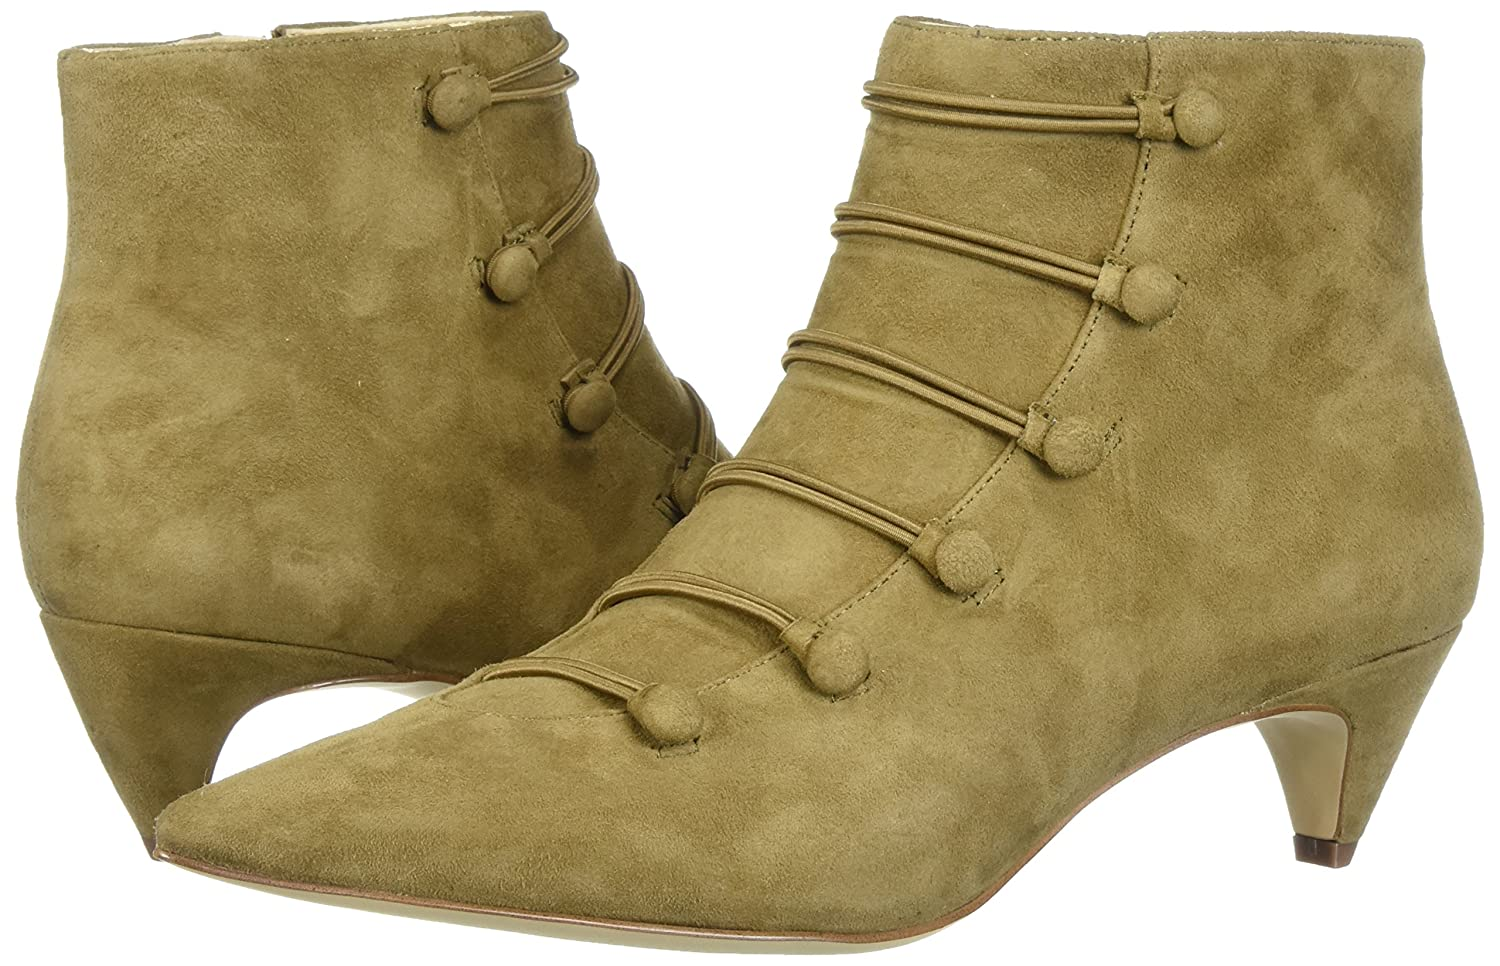 Nine West Women's Zadan Suede Ankle Boot B071484PQ7 9.5 B(M) US|Green